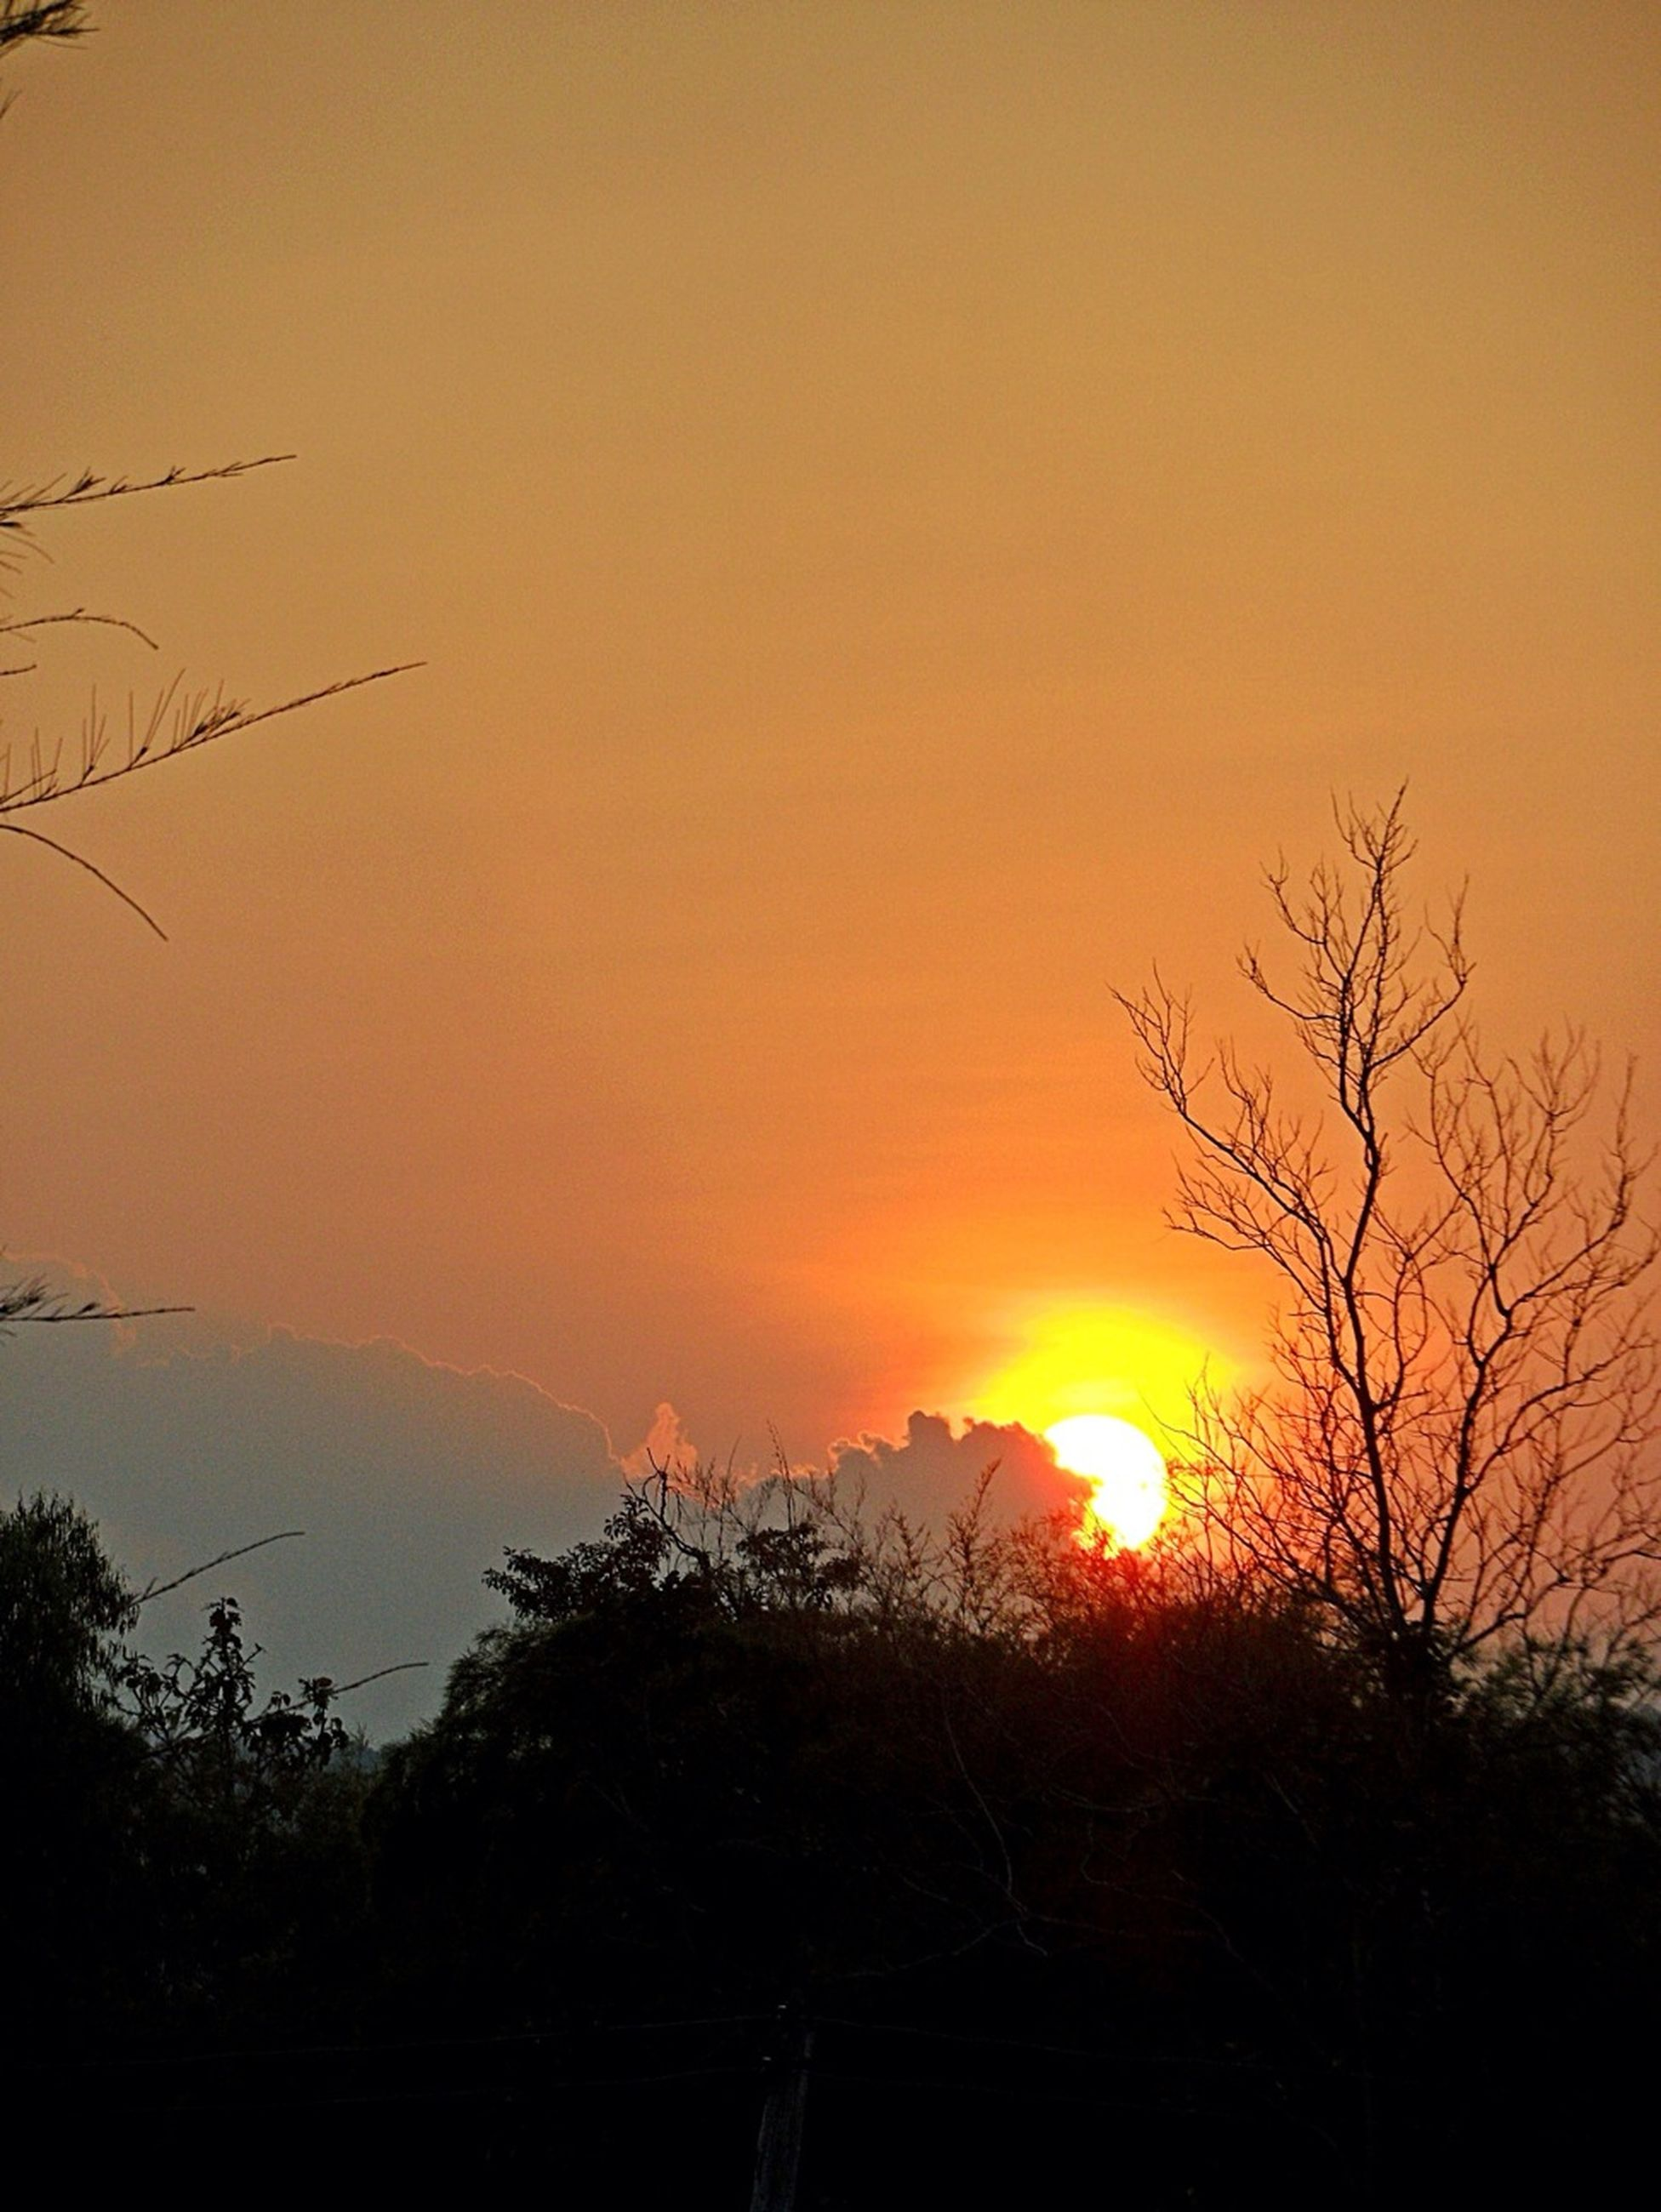 sunset, orange color, silhouette, sun, scenics, beauty in nature, tranquility, tree, tranquil scene, nature, idyllic, sky, clear sky, copy space, outdoors, sunlight, no people, branch, growth, majestic